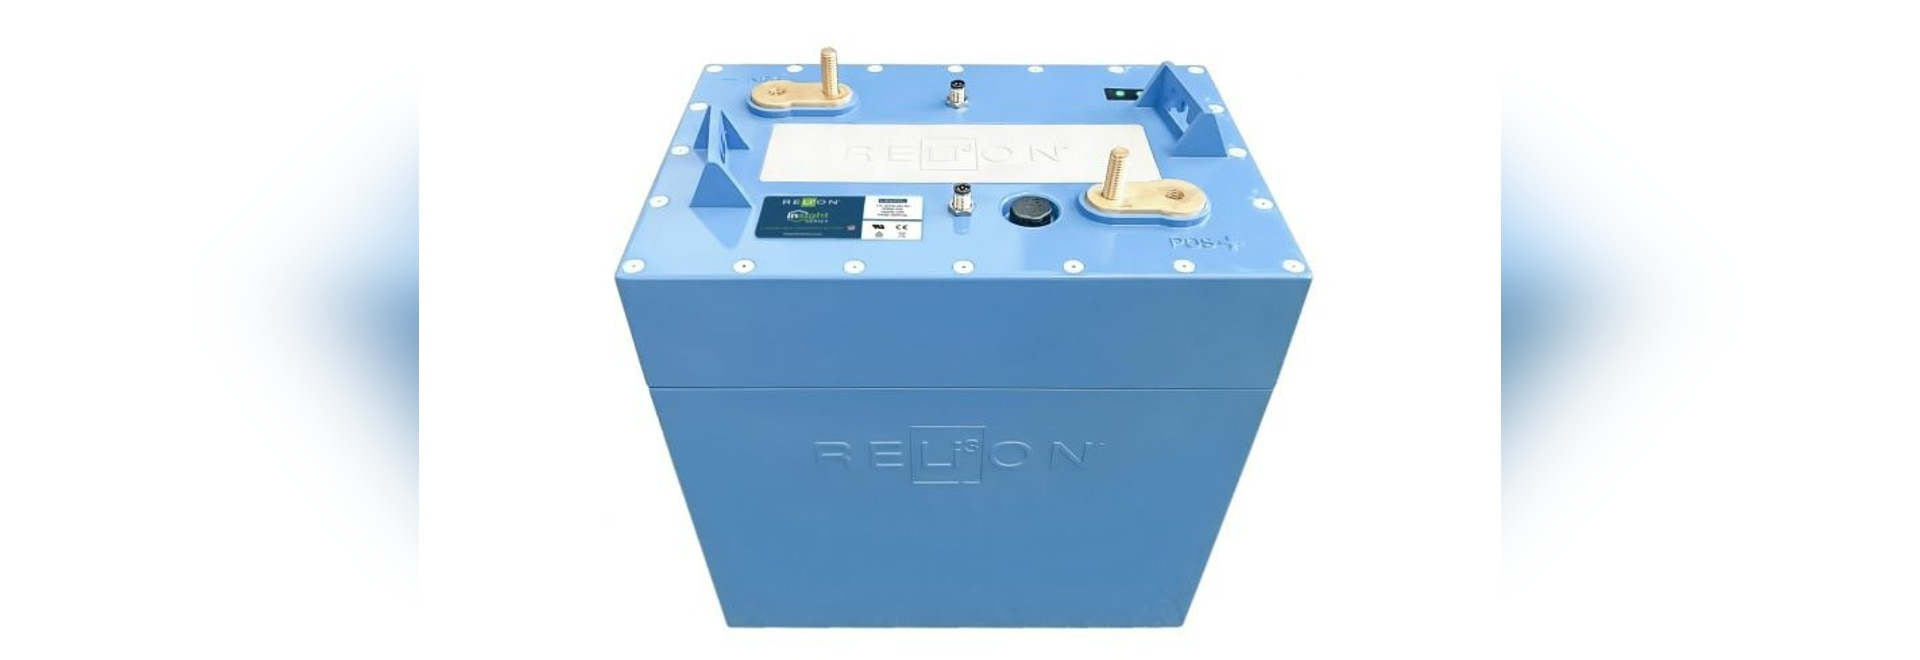 DBS Leoch will distribute RELiON's new Insight Series Photo: DBS Leoch